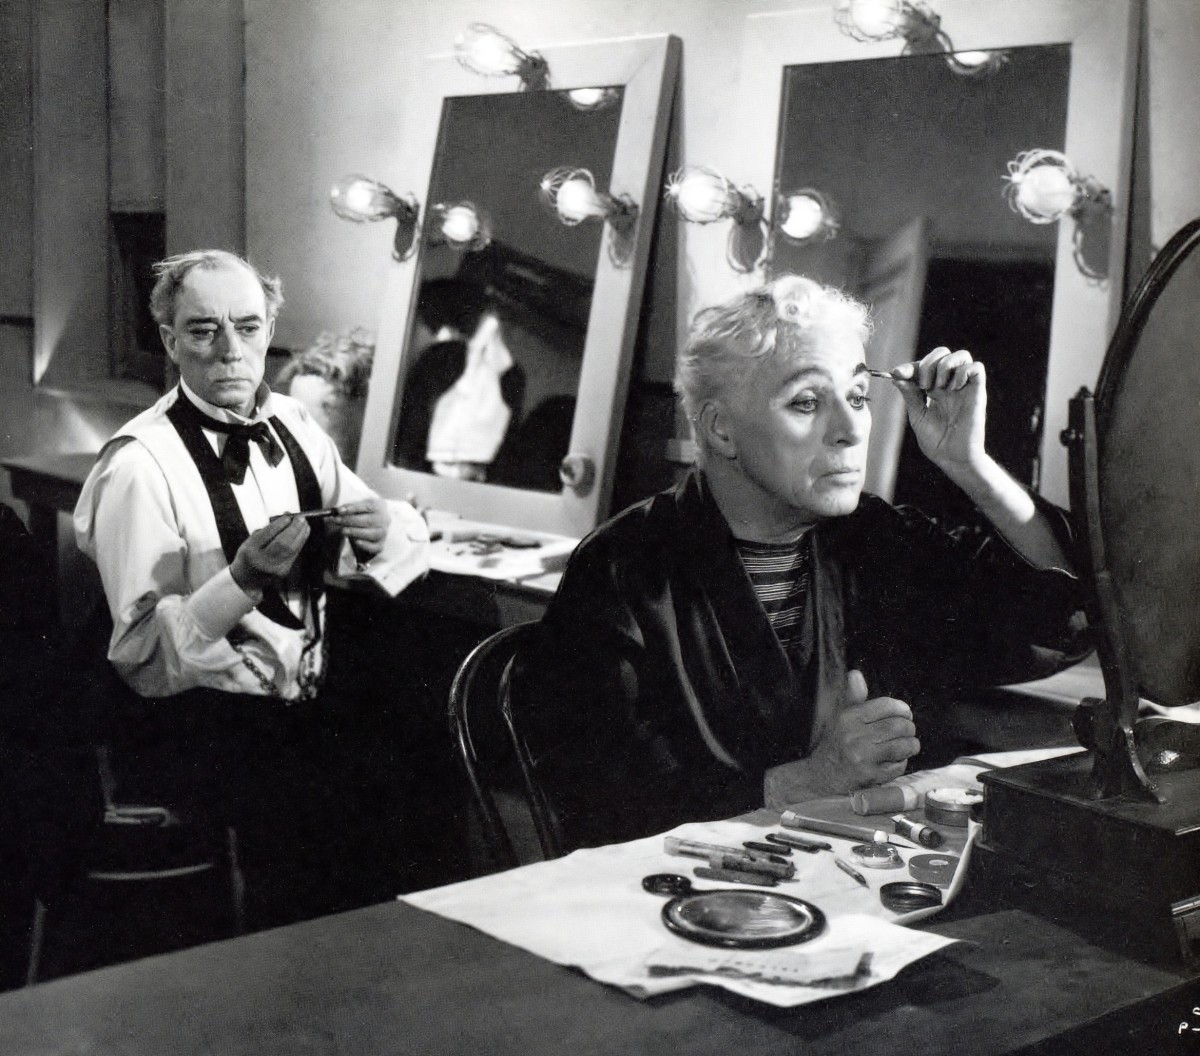 Buster with Chaplin in Limelight (1952)